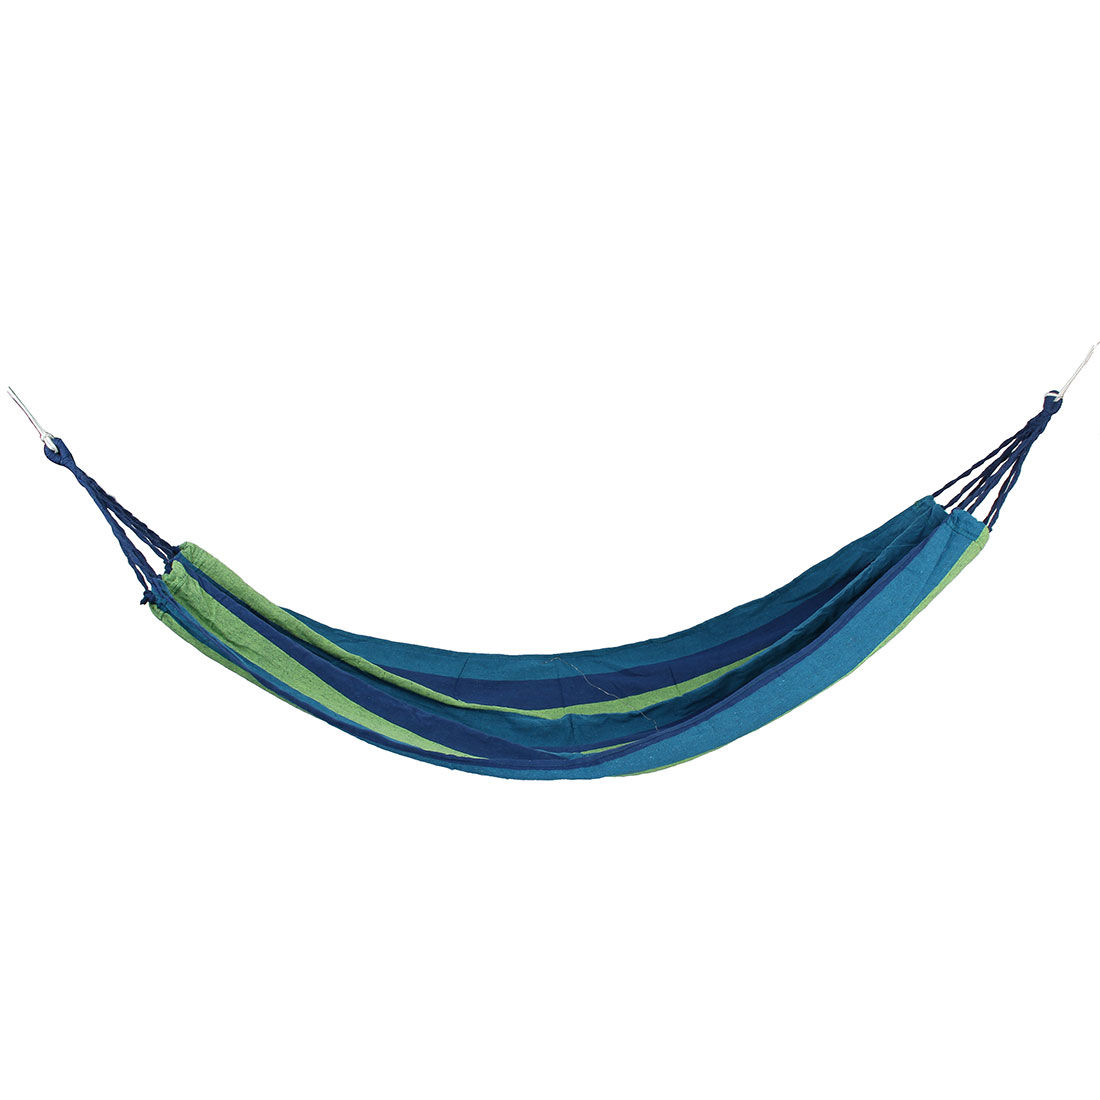 Outdoor Camping Travel Canvas Ultralight Rope Swing Hanging Sleeping Bed Hammock